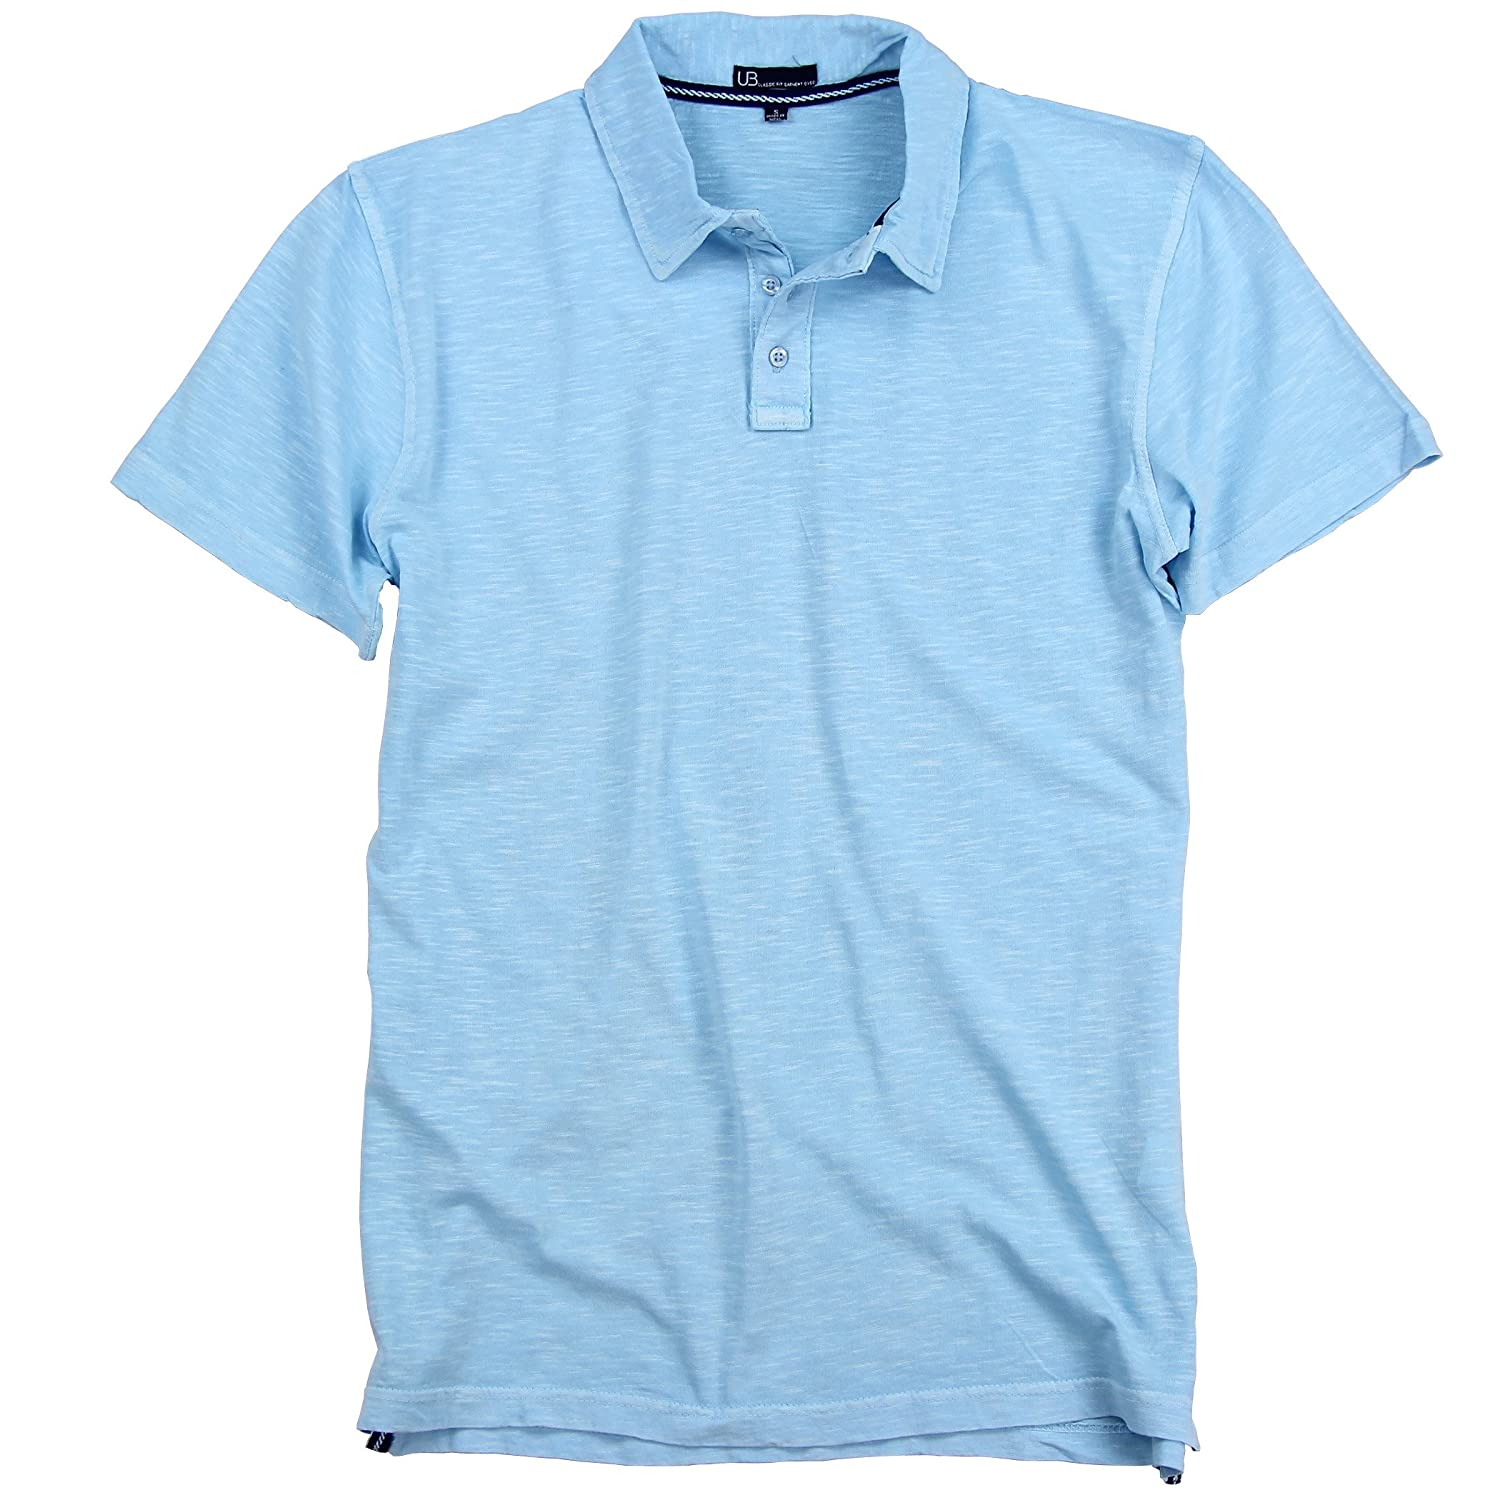 Men's Slim Fit Garment Dyed 100% Cotton Polo